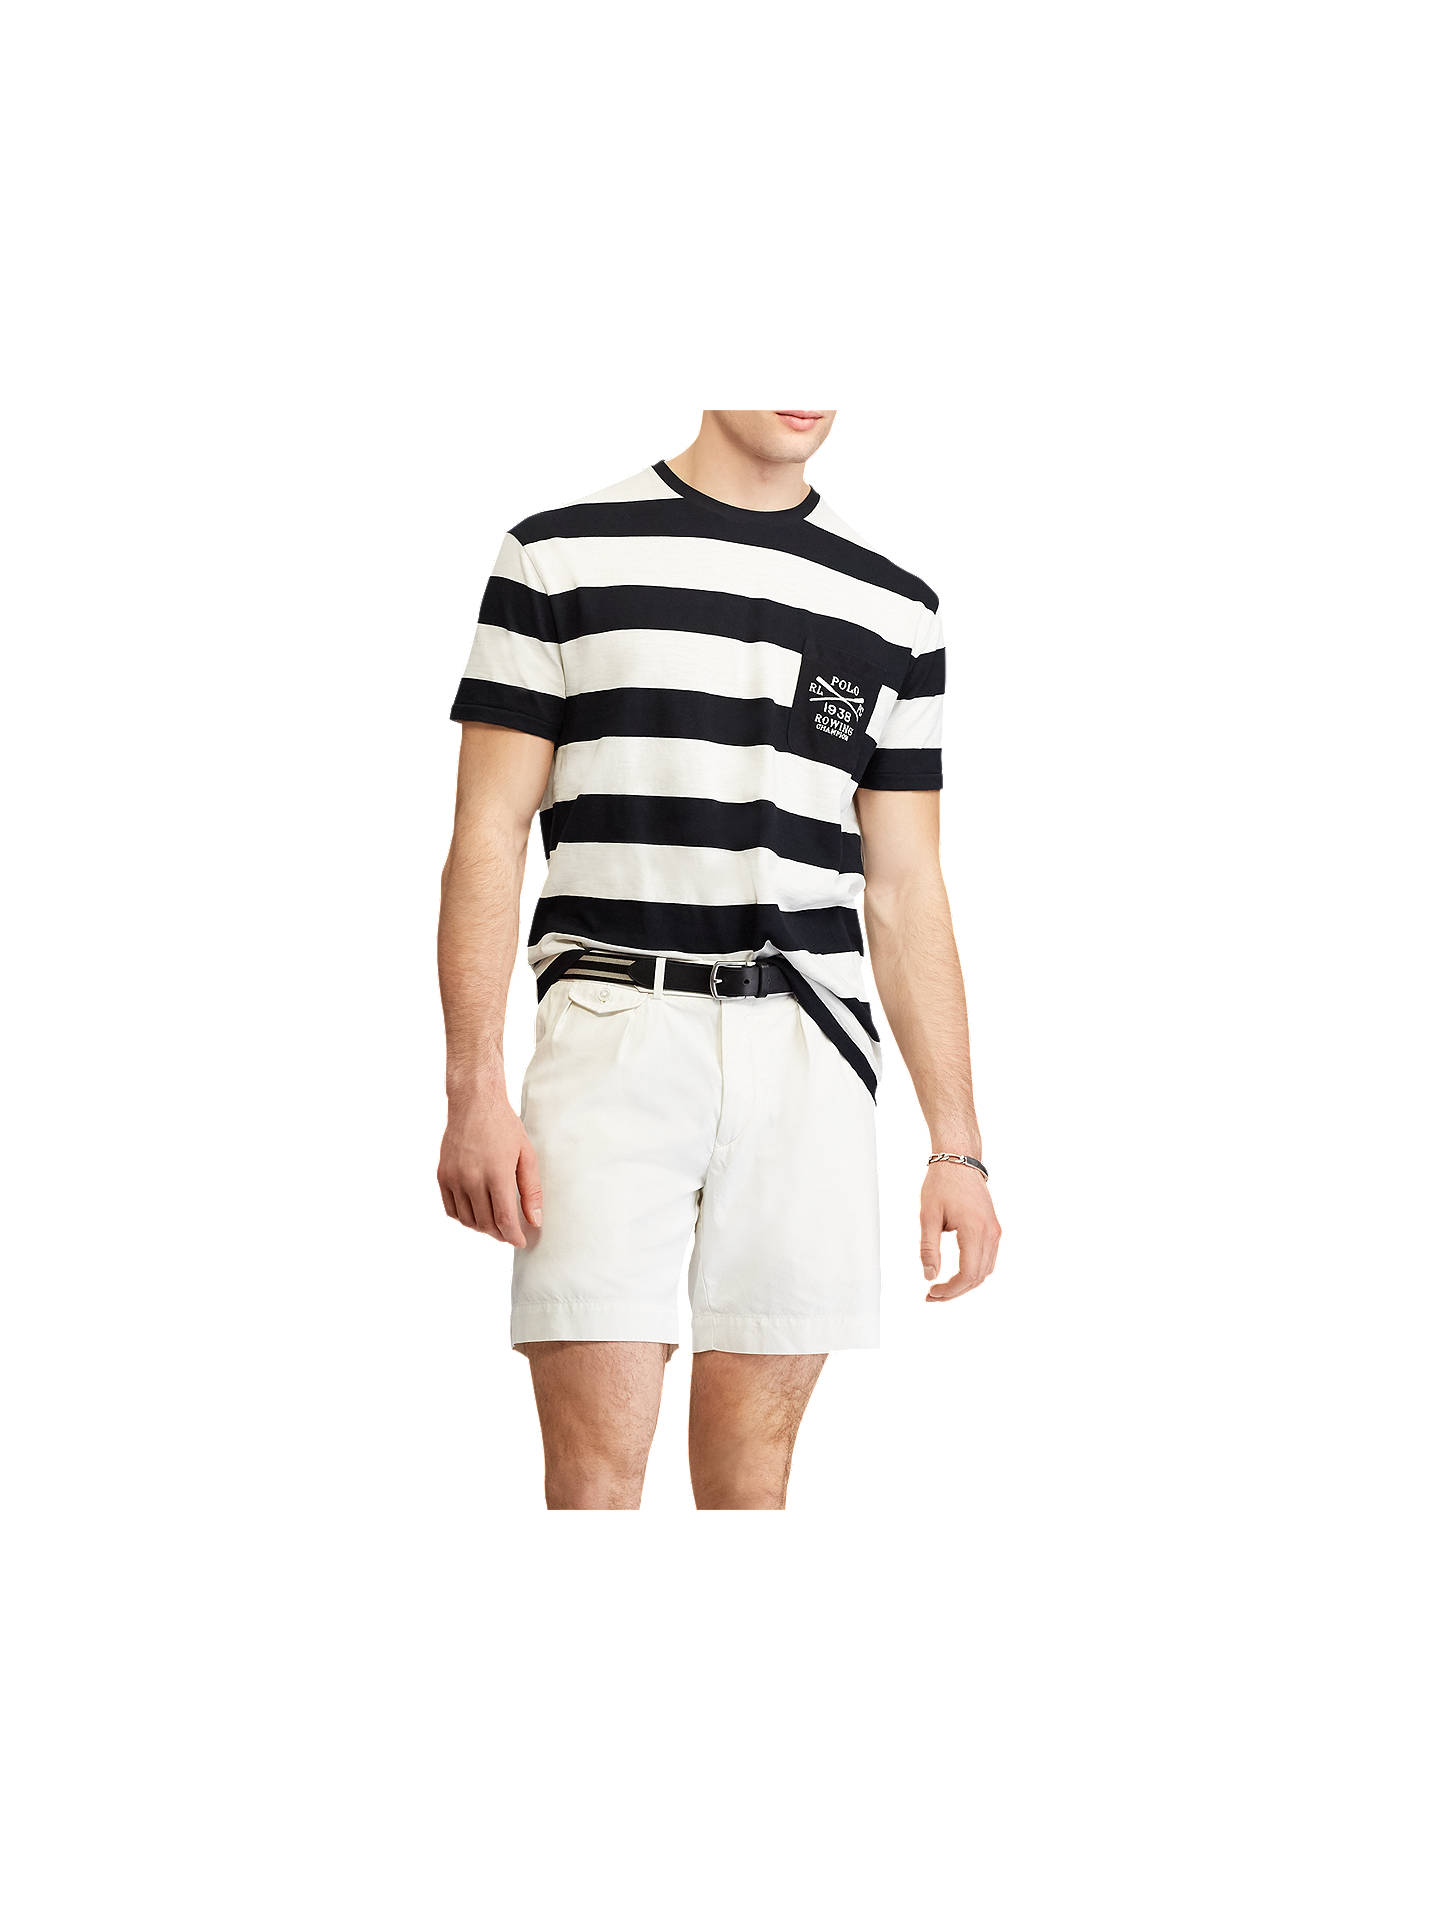 Buy Polo Ralph Lauren Short Sleeve Stripe Logo T-Shirt, Polo Black/Desk Wash, M Online at johnlewis.com